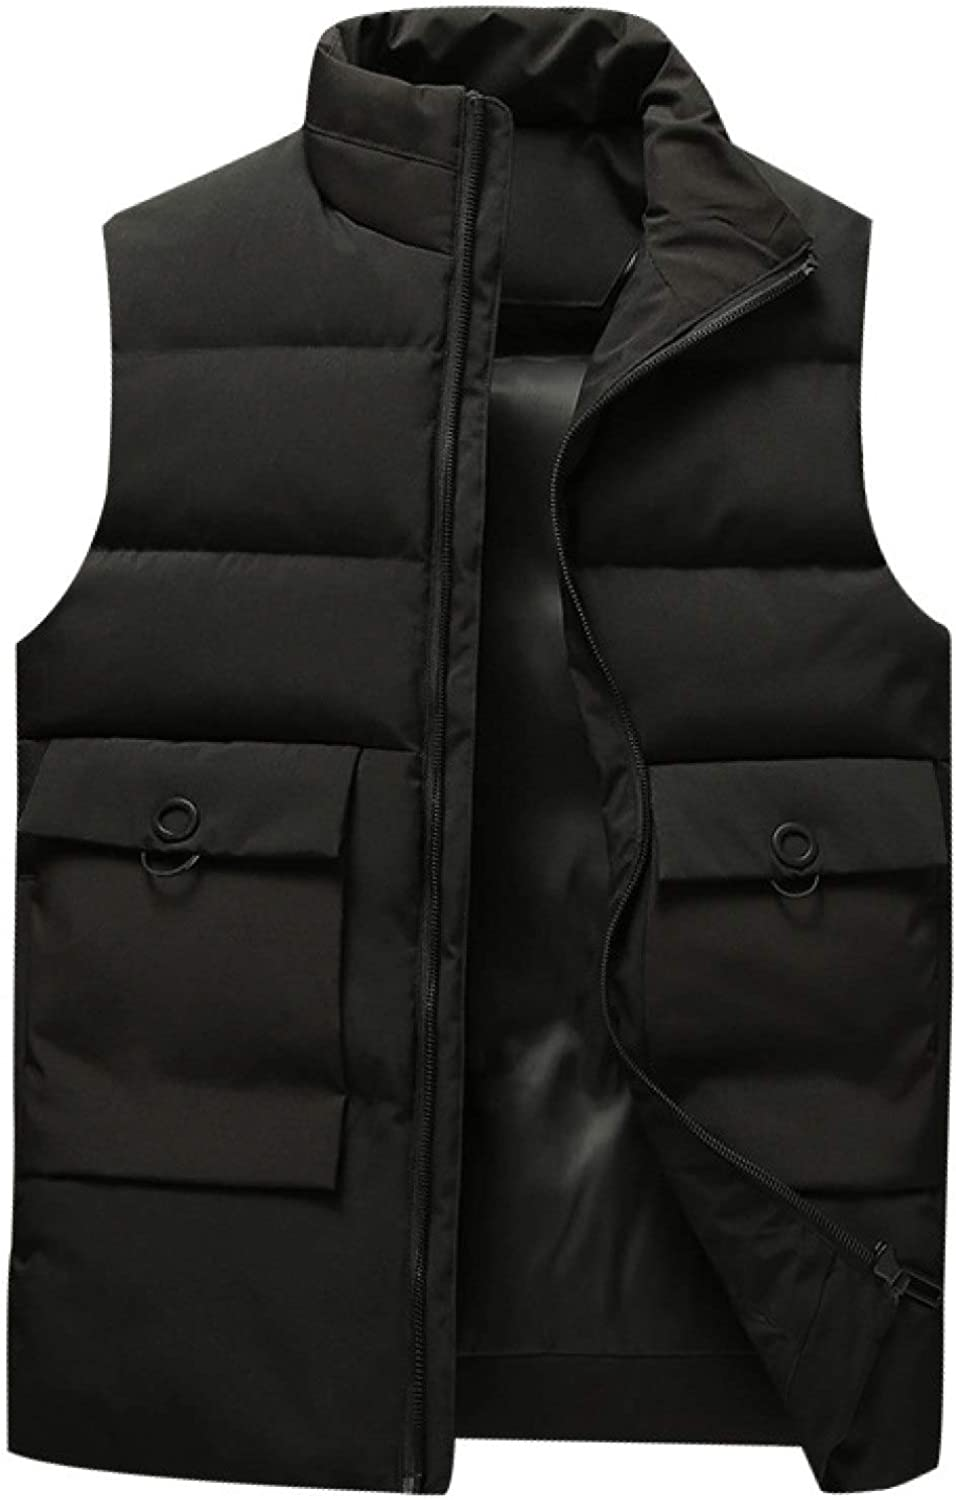 Men's Quilted Down Vest Polyester With Zipper Sleeveless Jackets Gilet Padded Puffer Pockets Waistcoat Jacket for Work Party